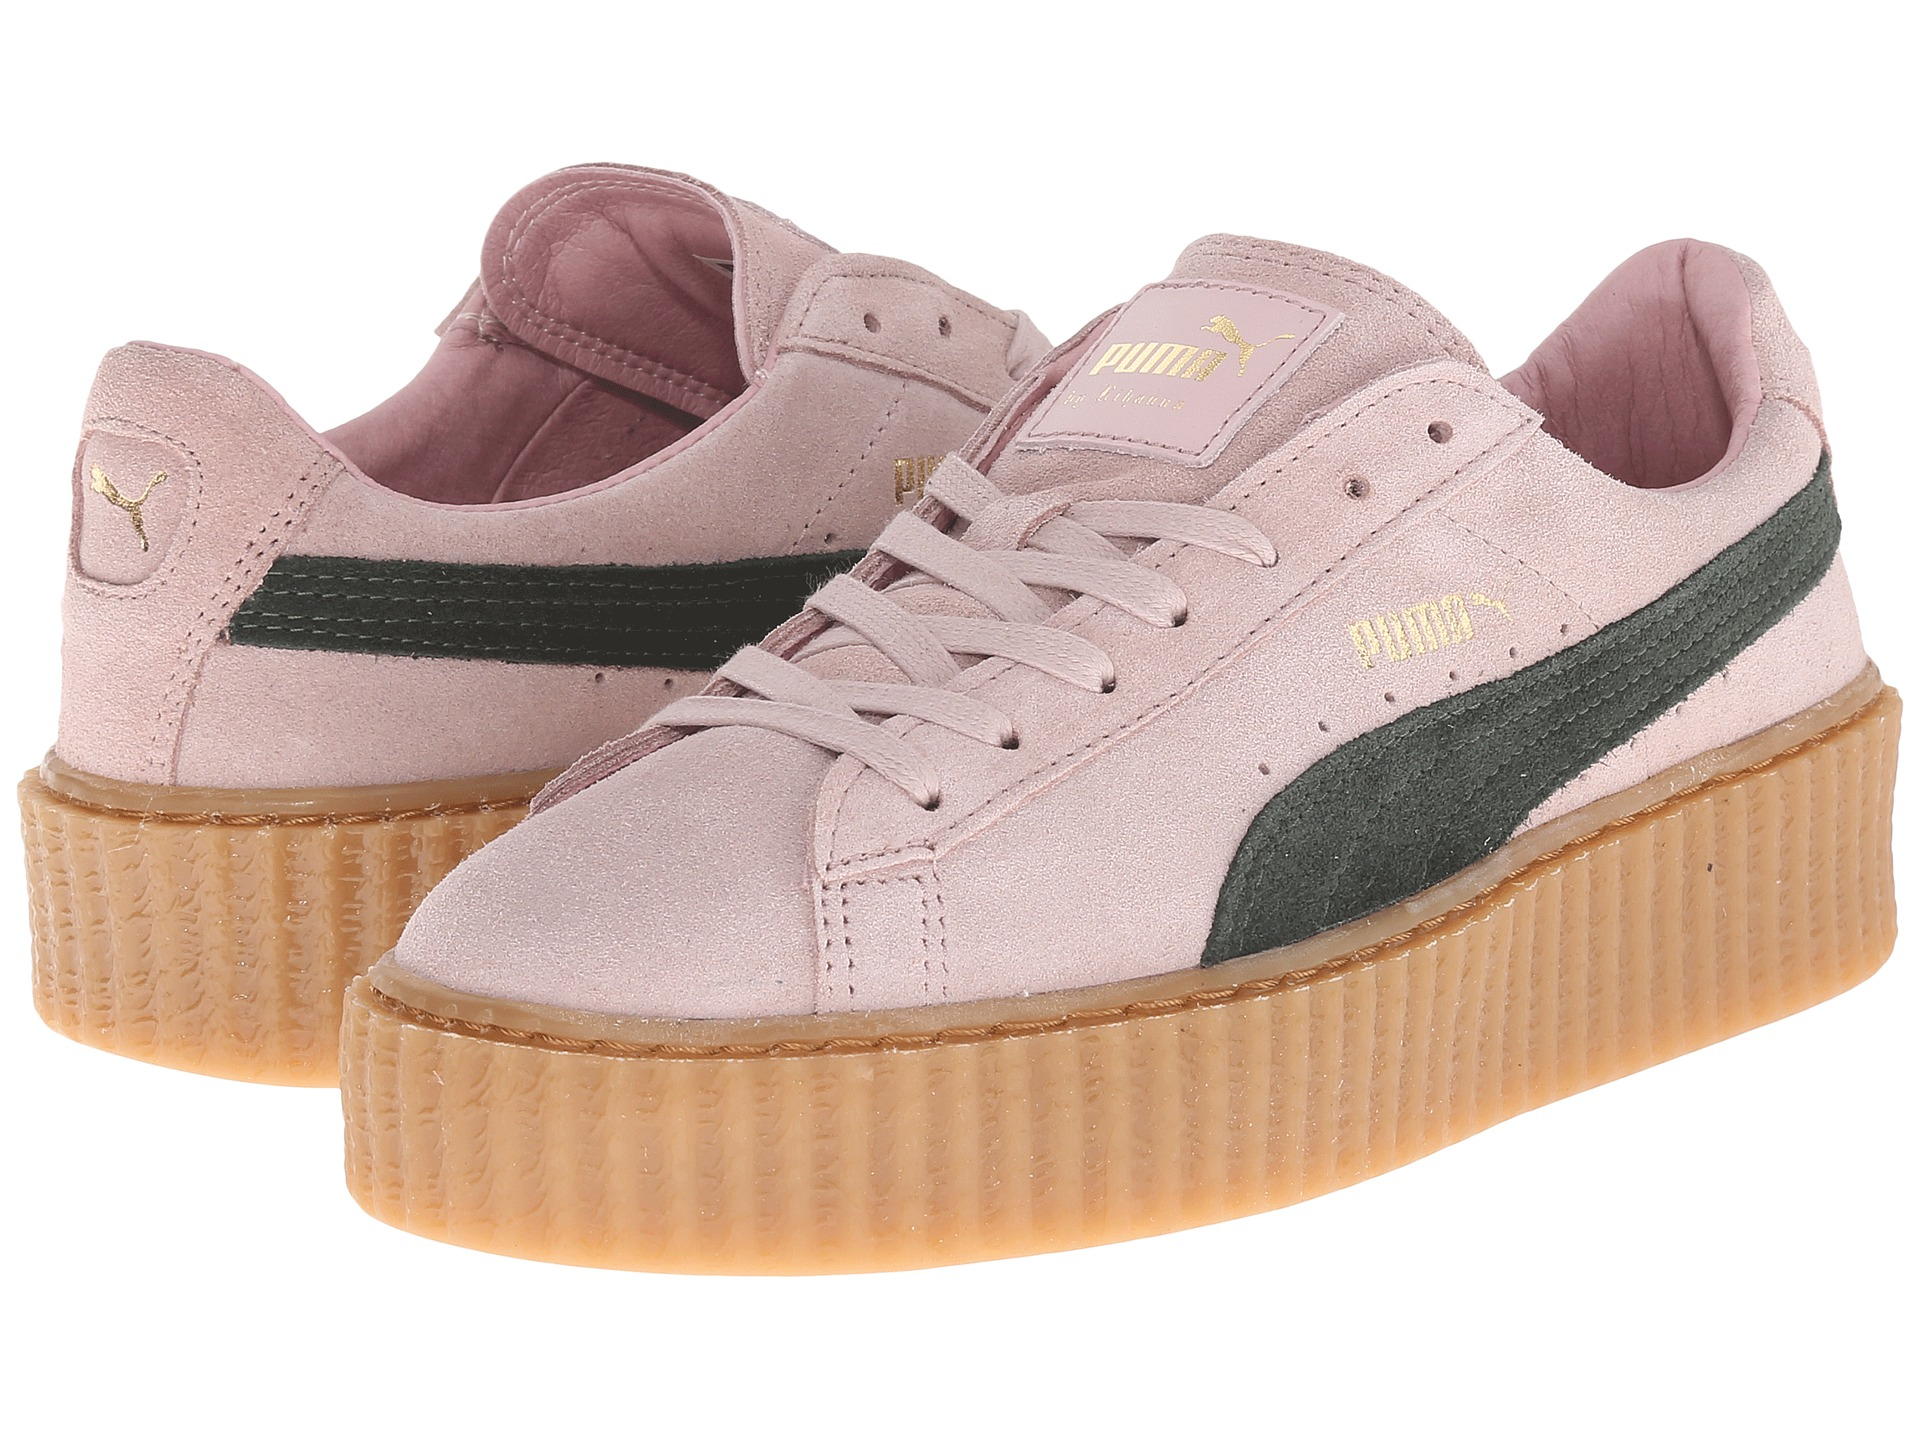 reputable site ef96a bae28 Women's Pink Rihanna X Suede Creepers